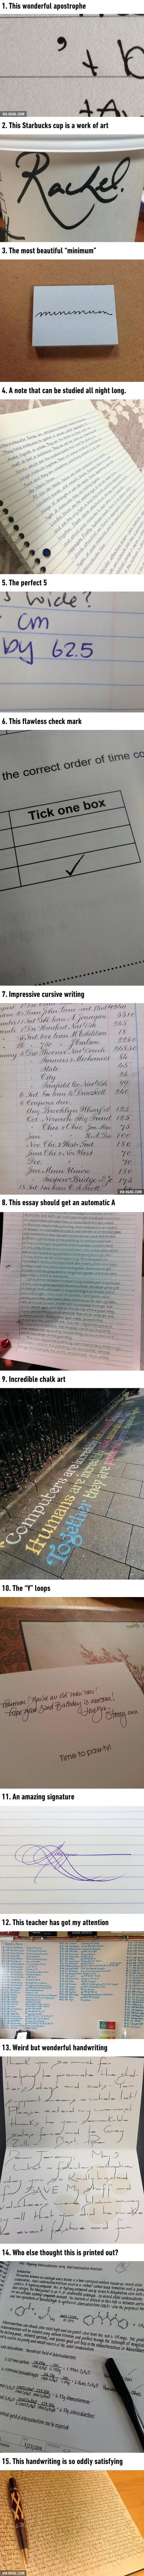 Pieces Of Handwriting That Are So Satisfying – 9GAG